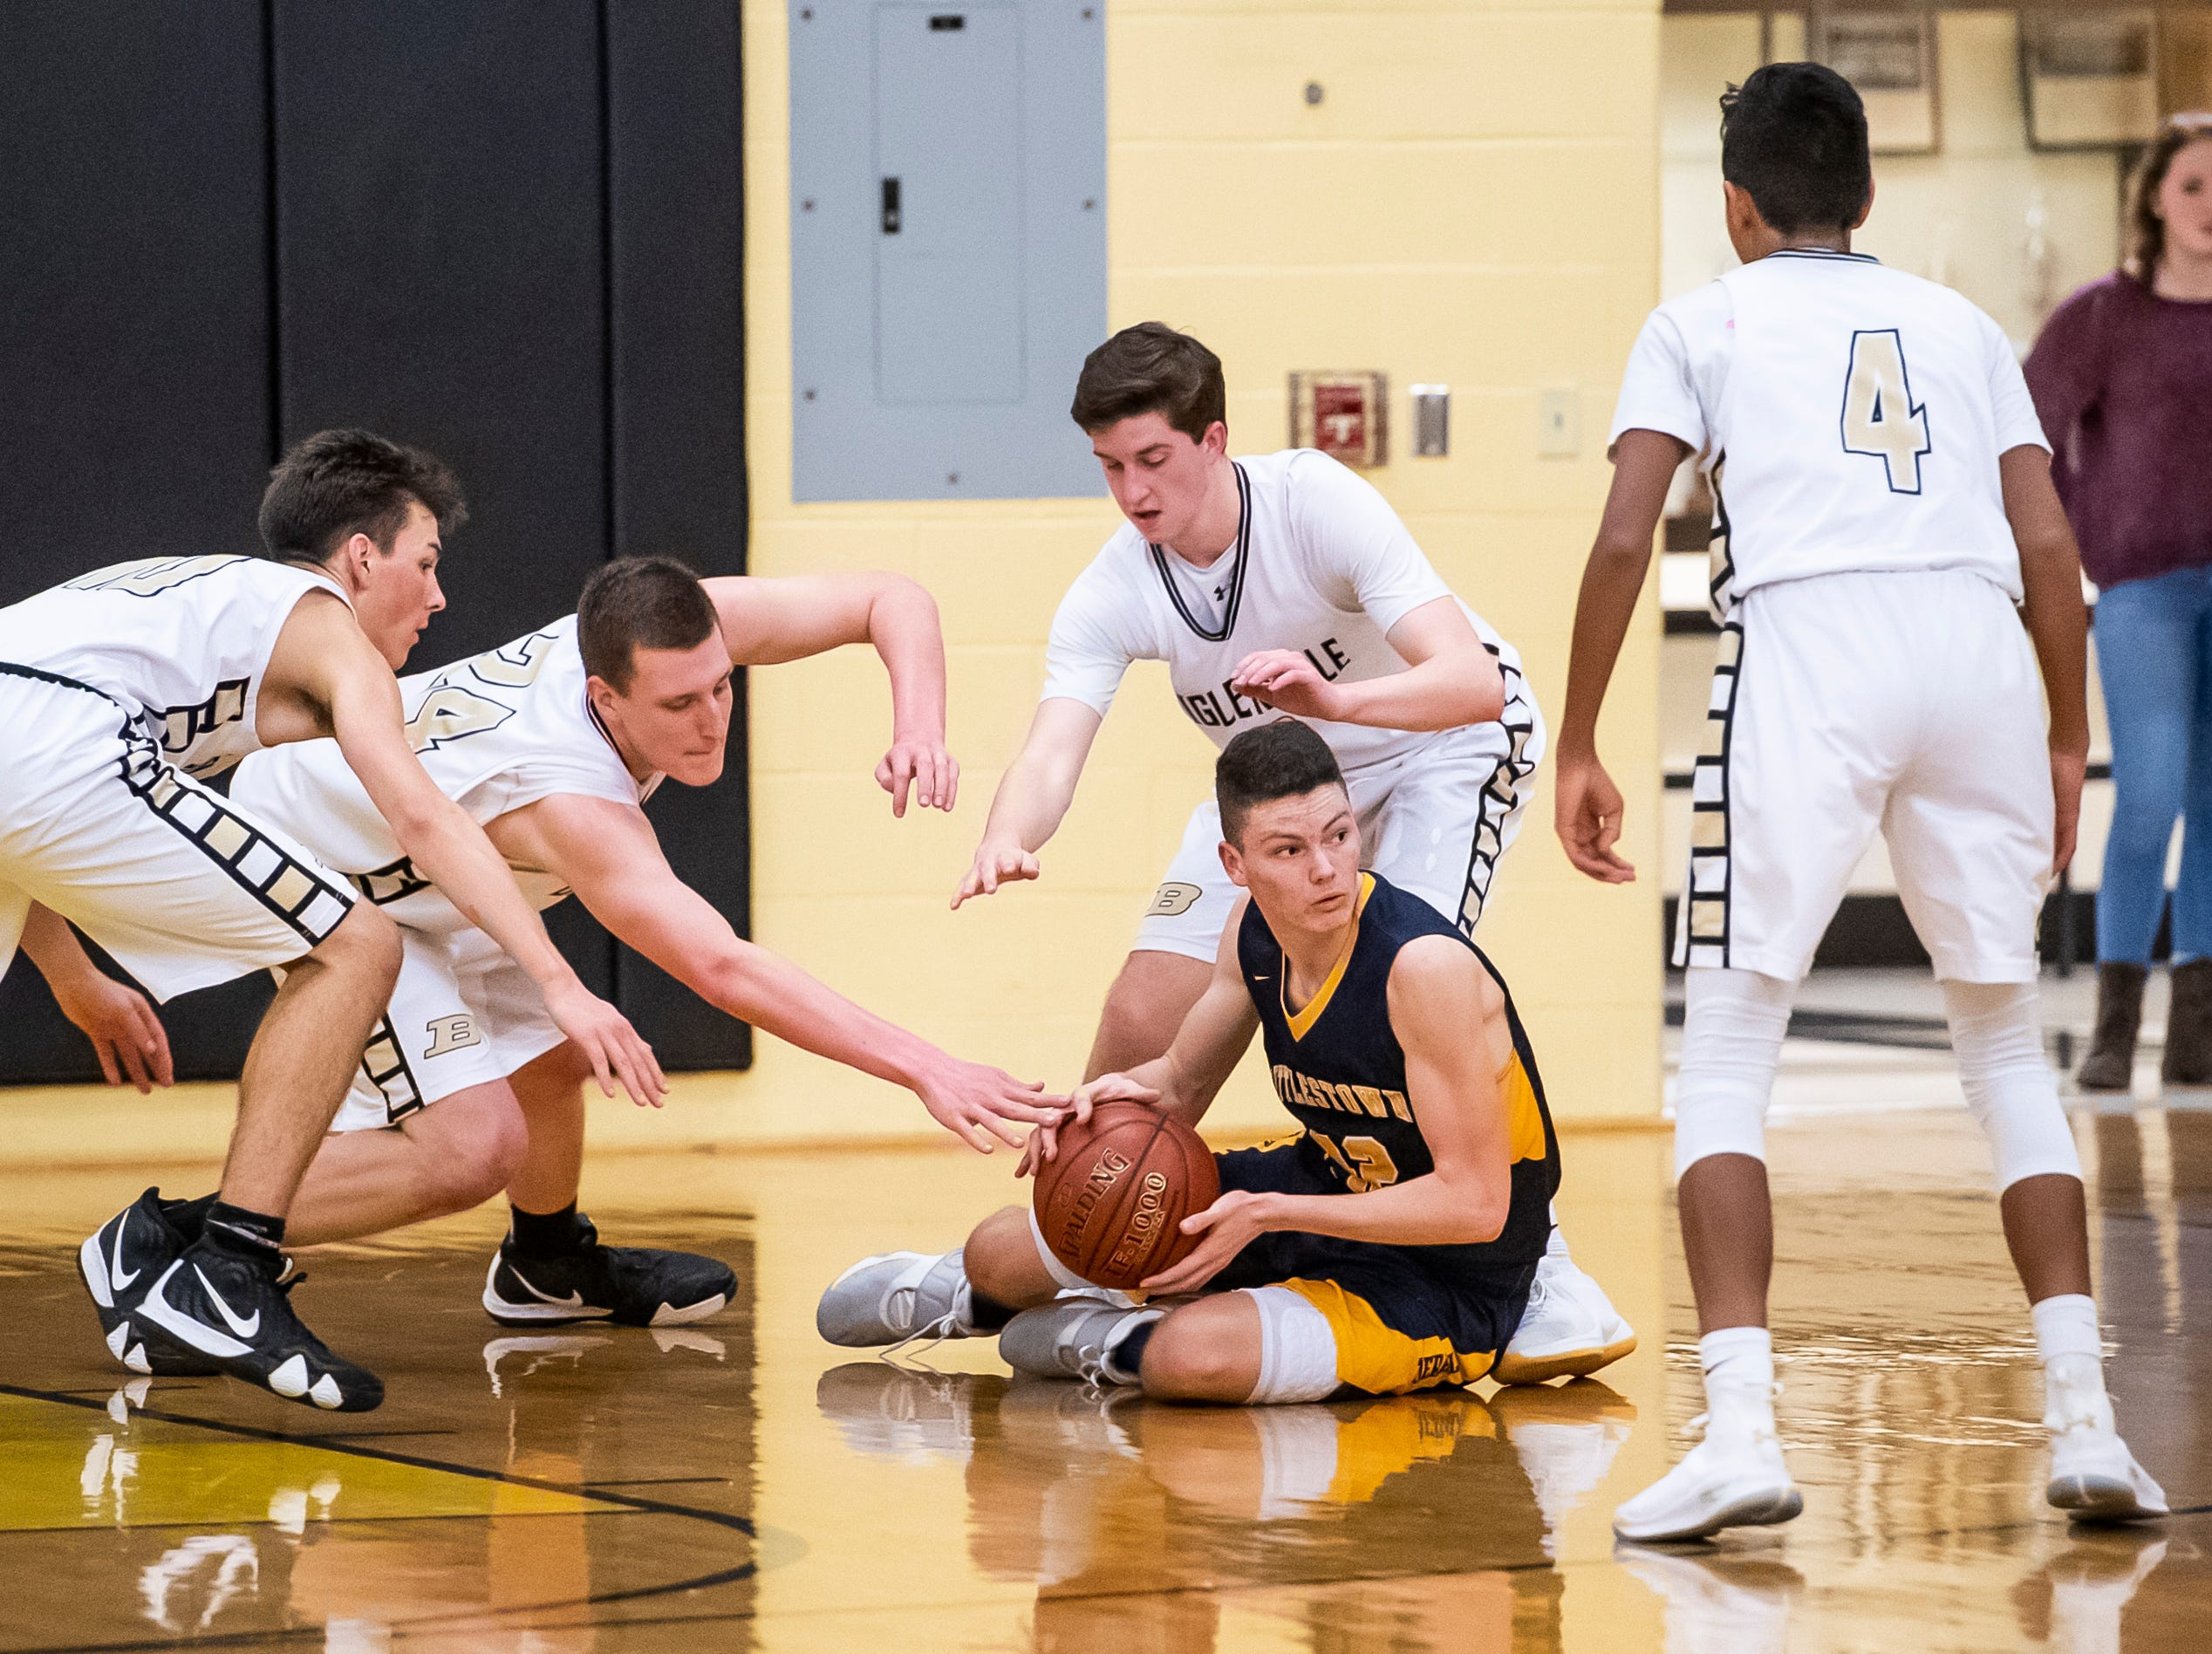 Littlestown's Brayden Staub holds onto the ball during play against Biglerville on Friday, January 11, 2019. The Bolts won 65-38.